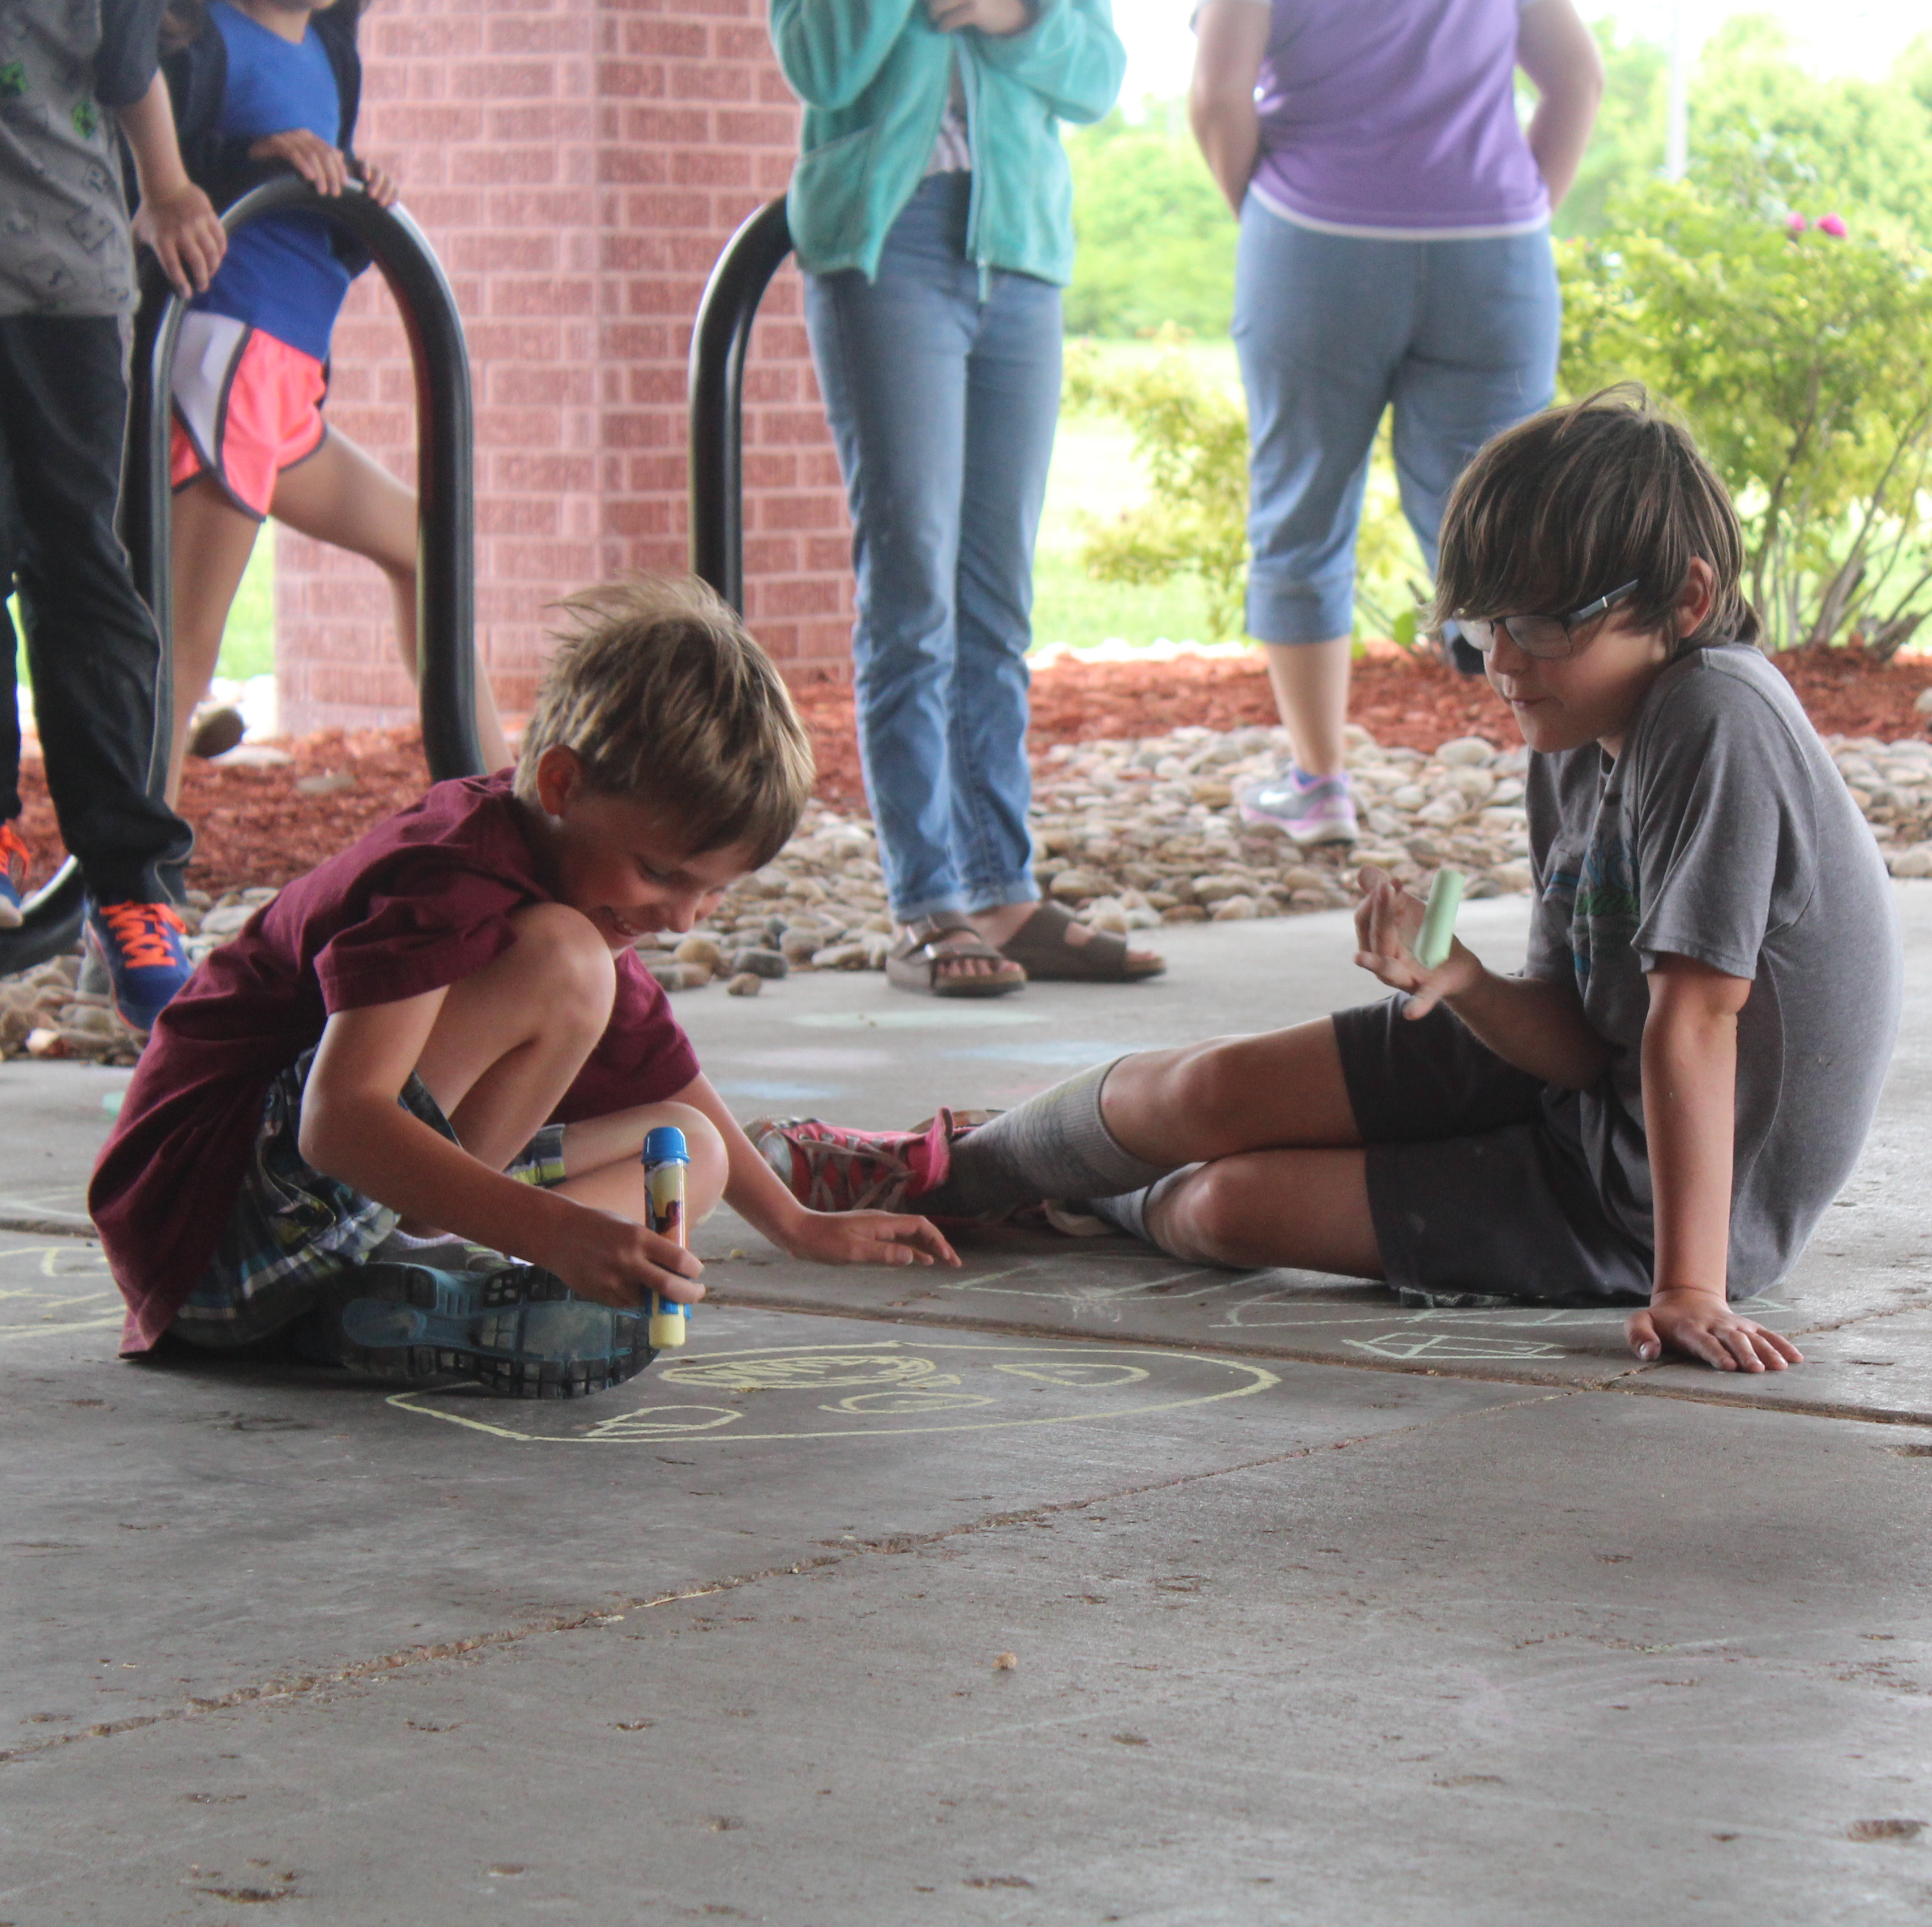 BCE kids camp photo of children drawing with chalk on concrete.